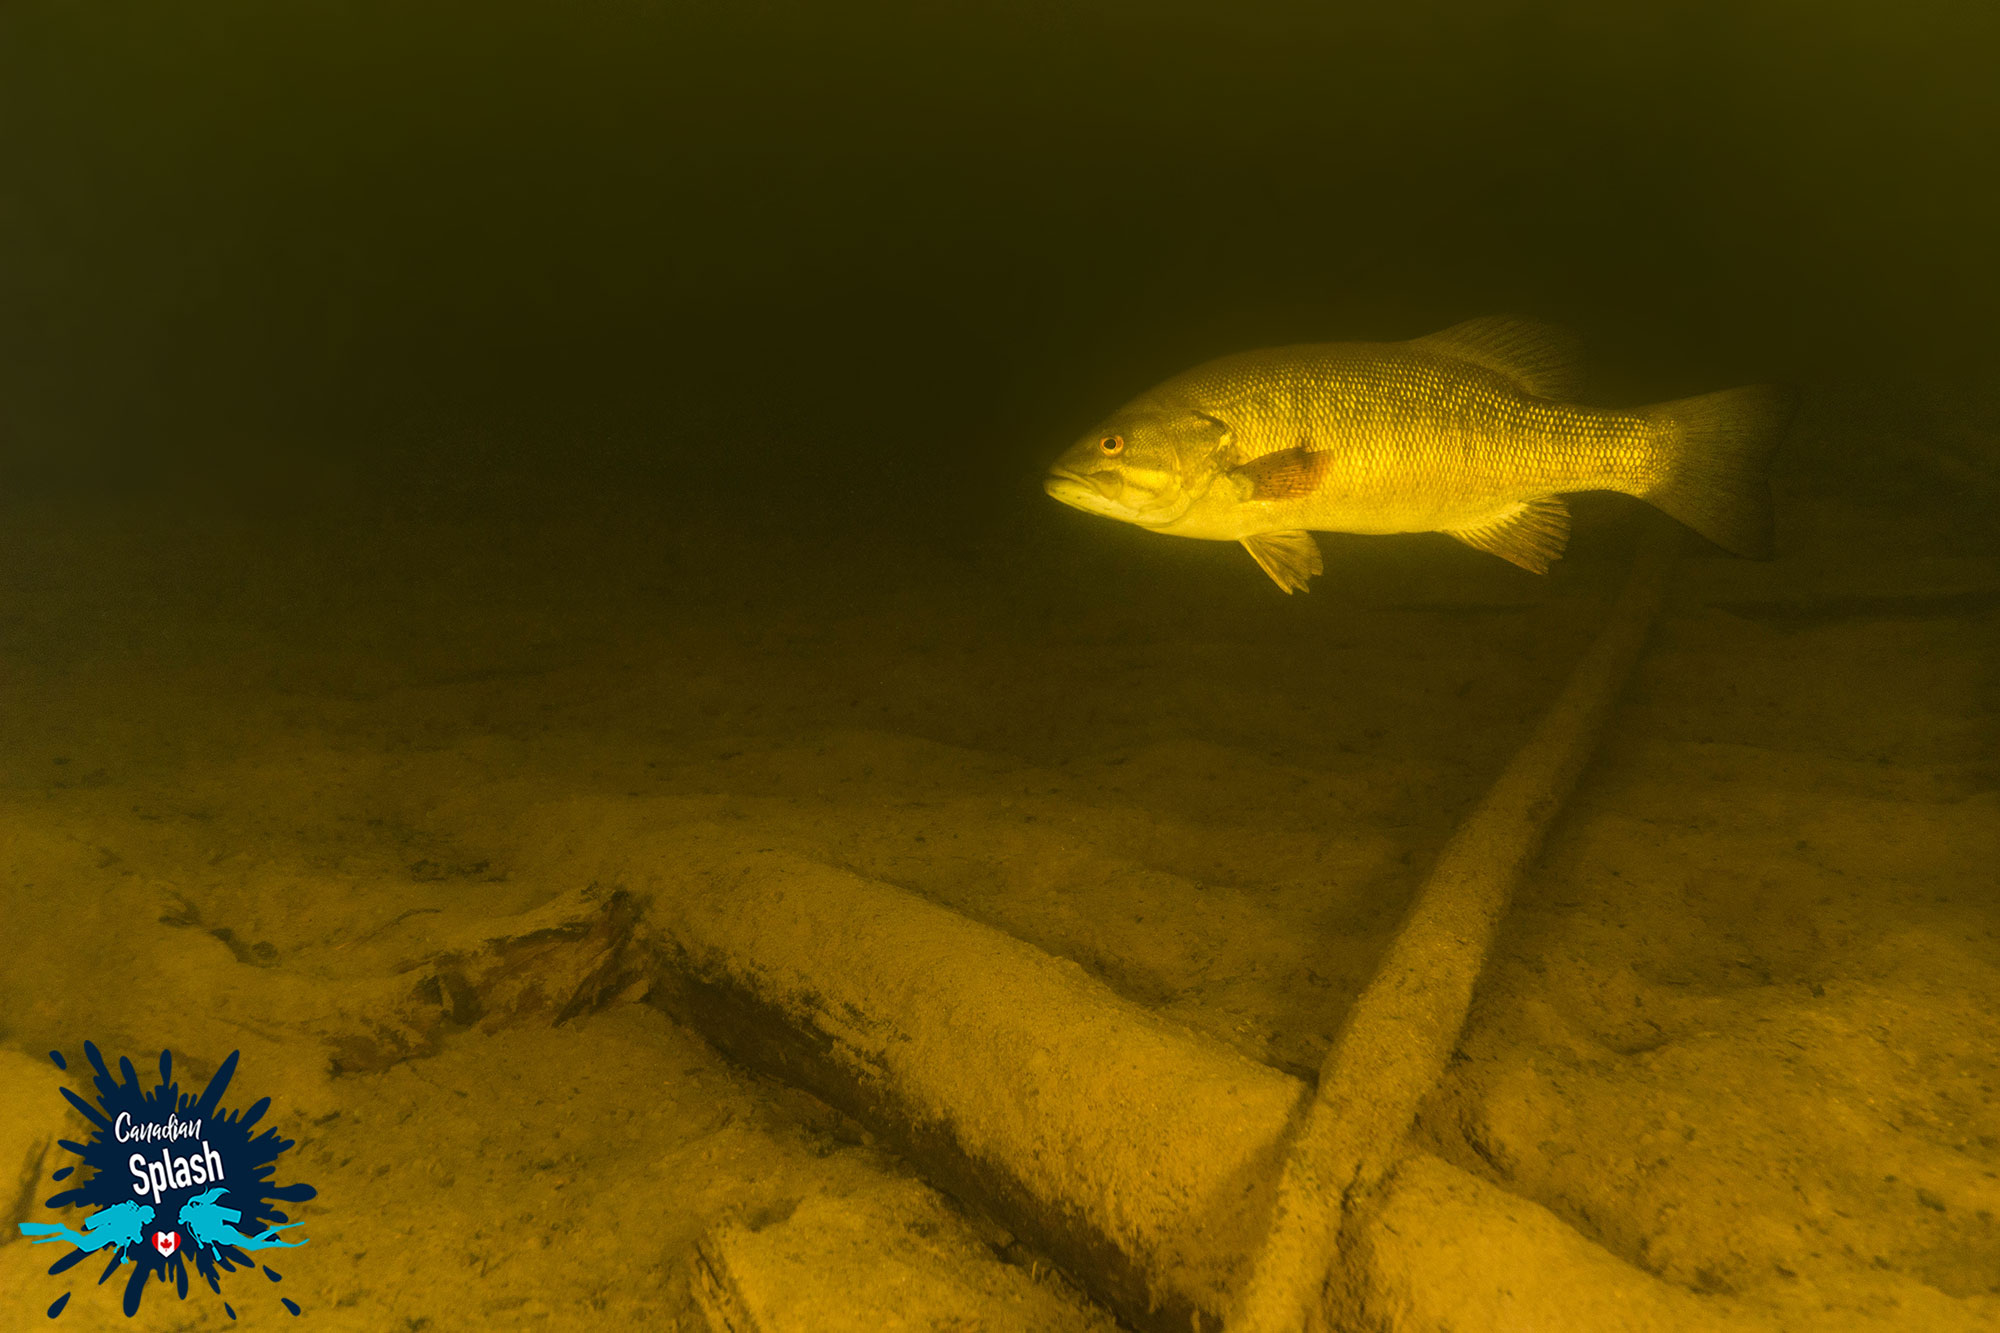 The Muddy Bottom Of Rabbit Lake, Sunken Logs And A Bass Swimming, Temagami, Northern Ontario Scuba Diving, Canada